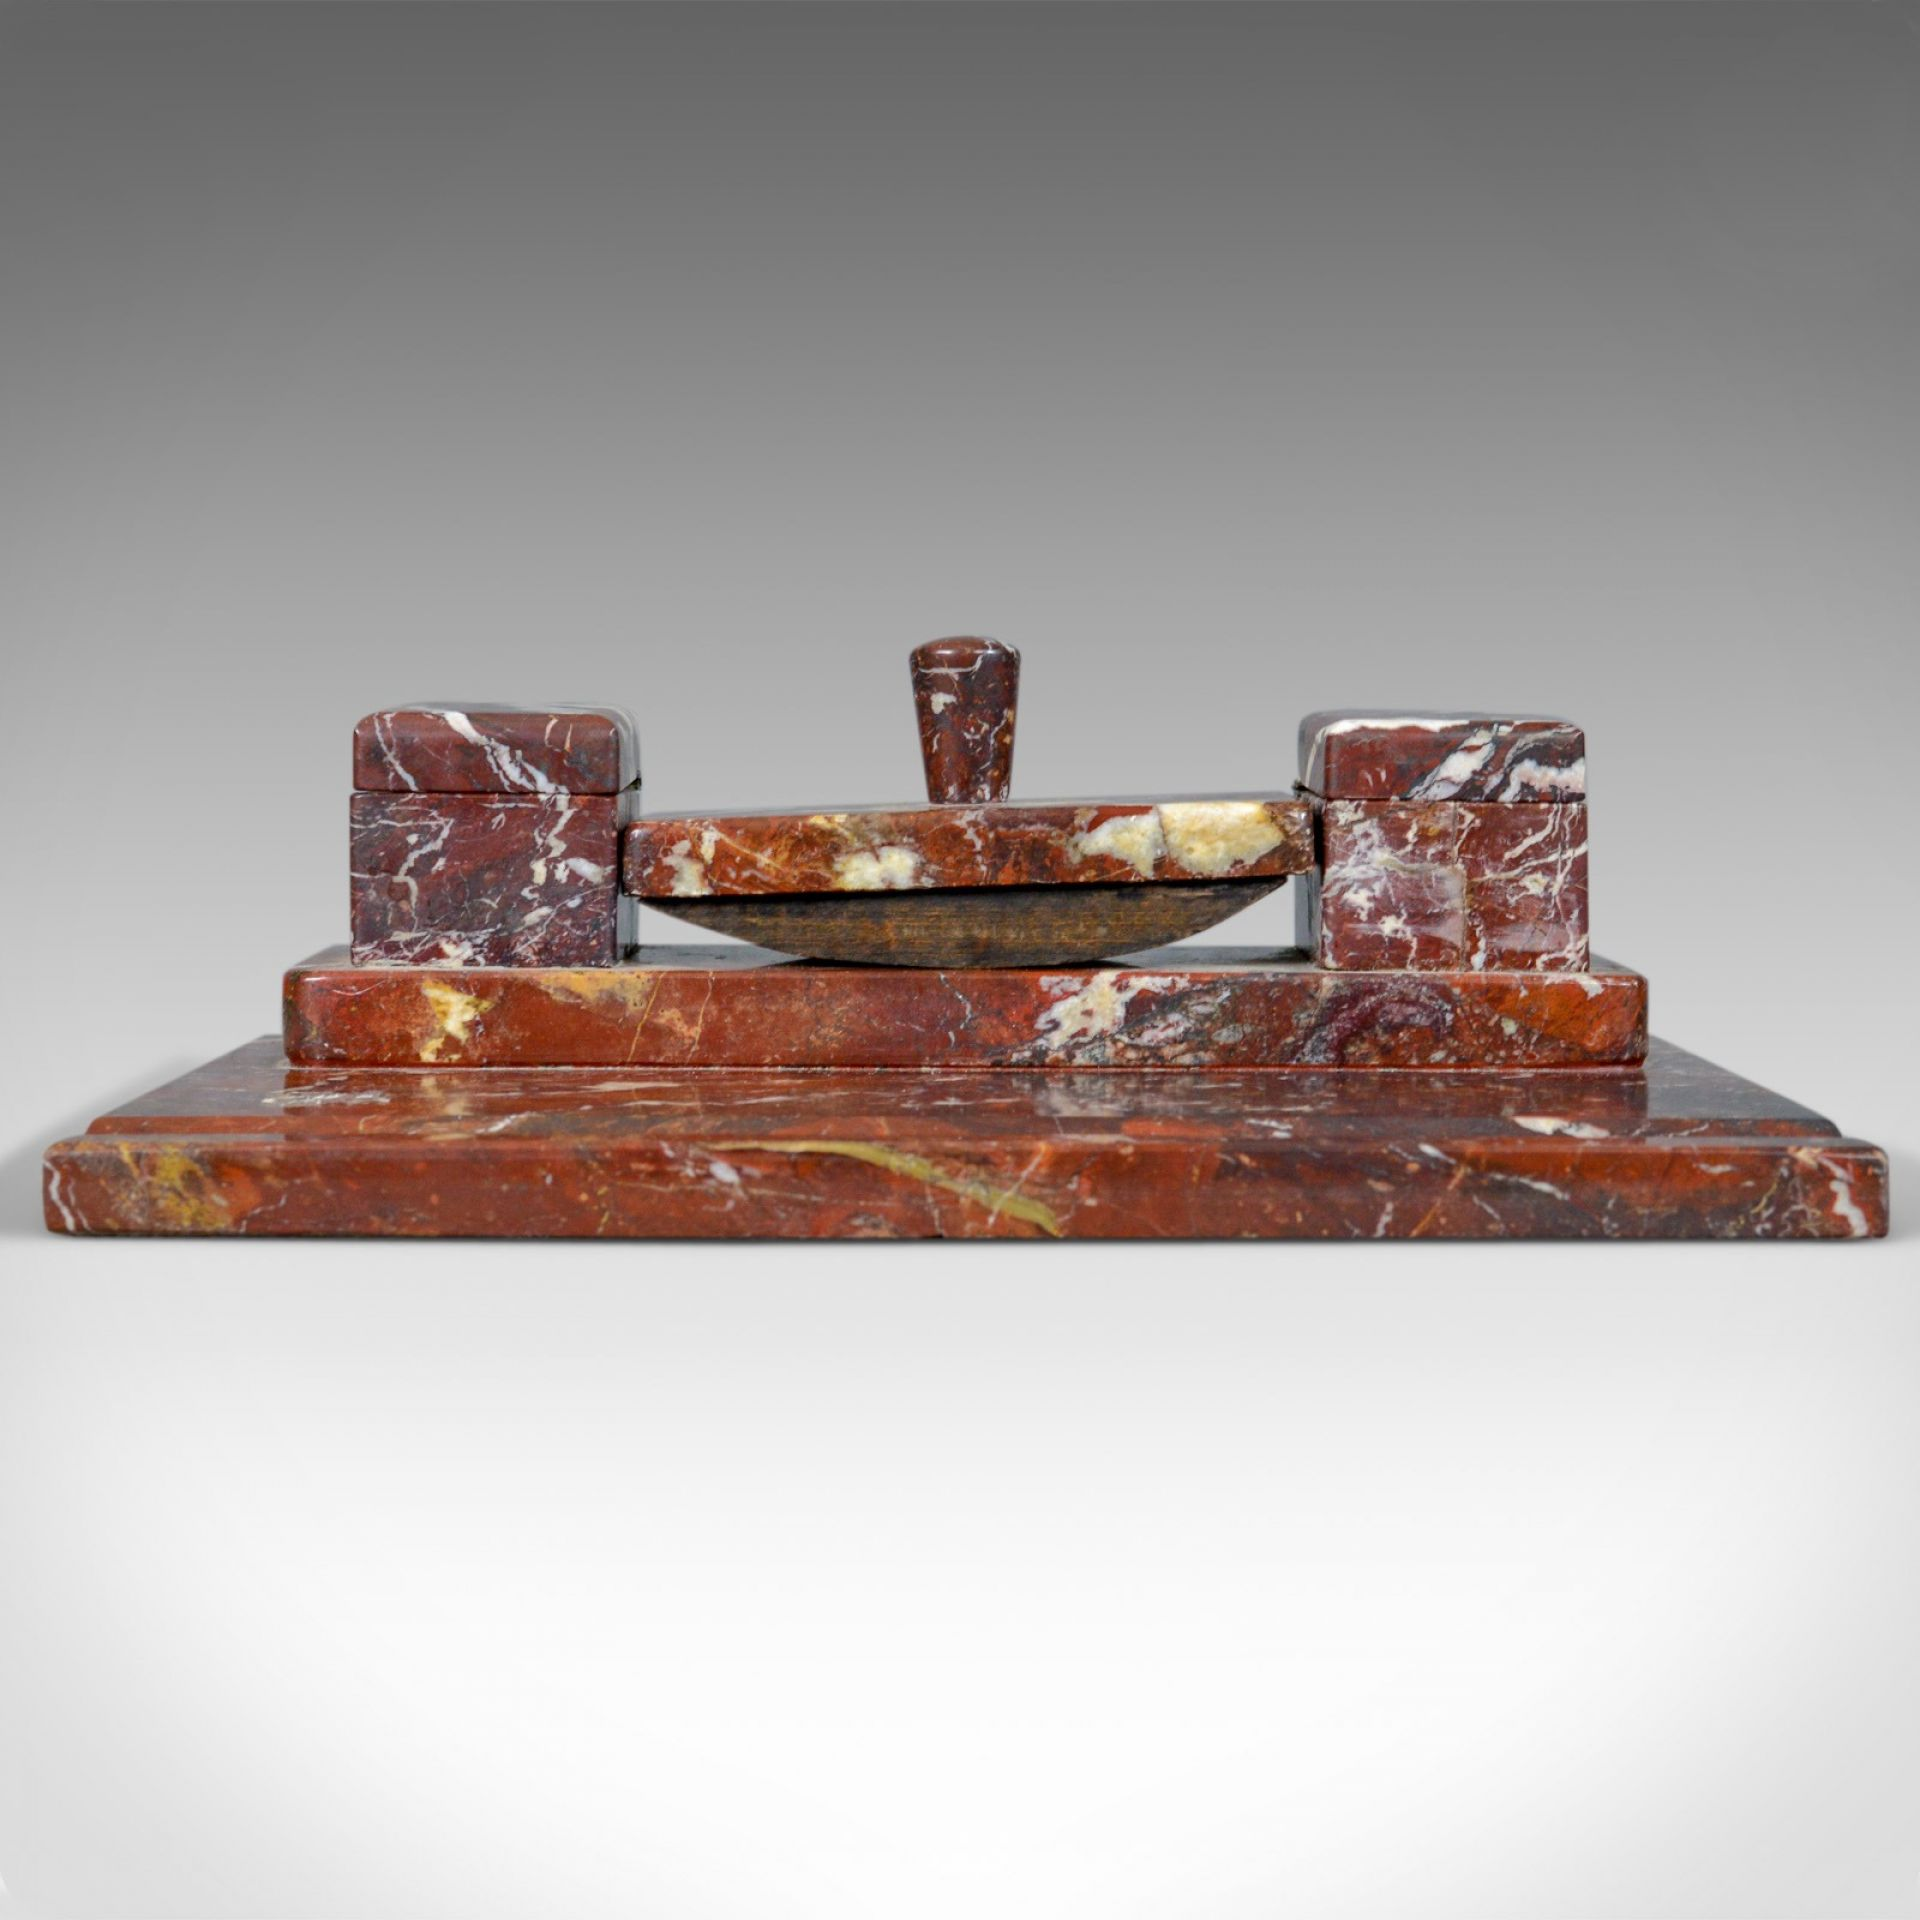 French Antique, Art Deco, Marble Desk Stand, Large, Inkwell, Blotter, c.1930